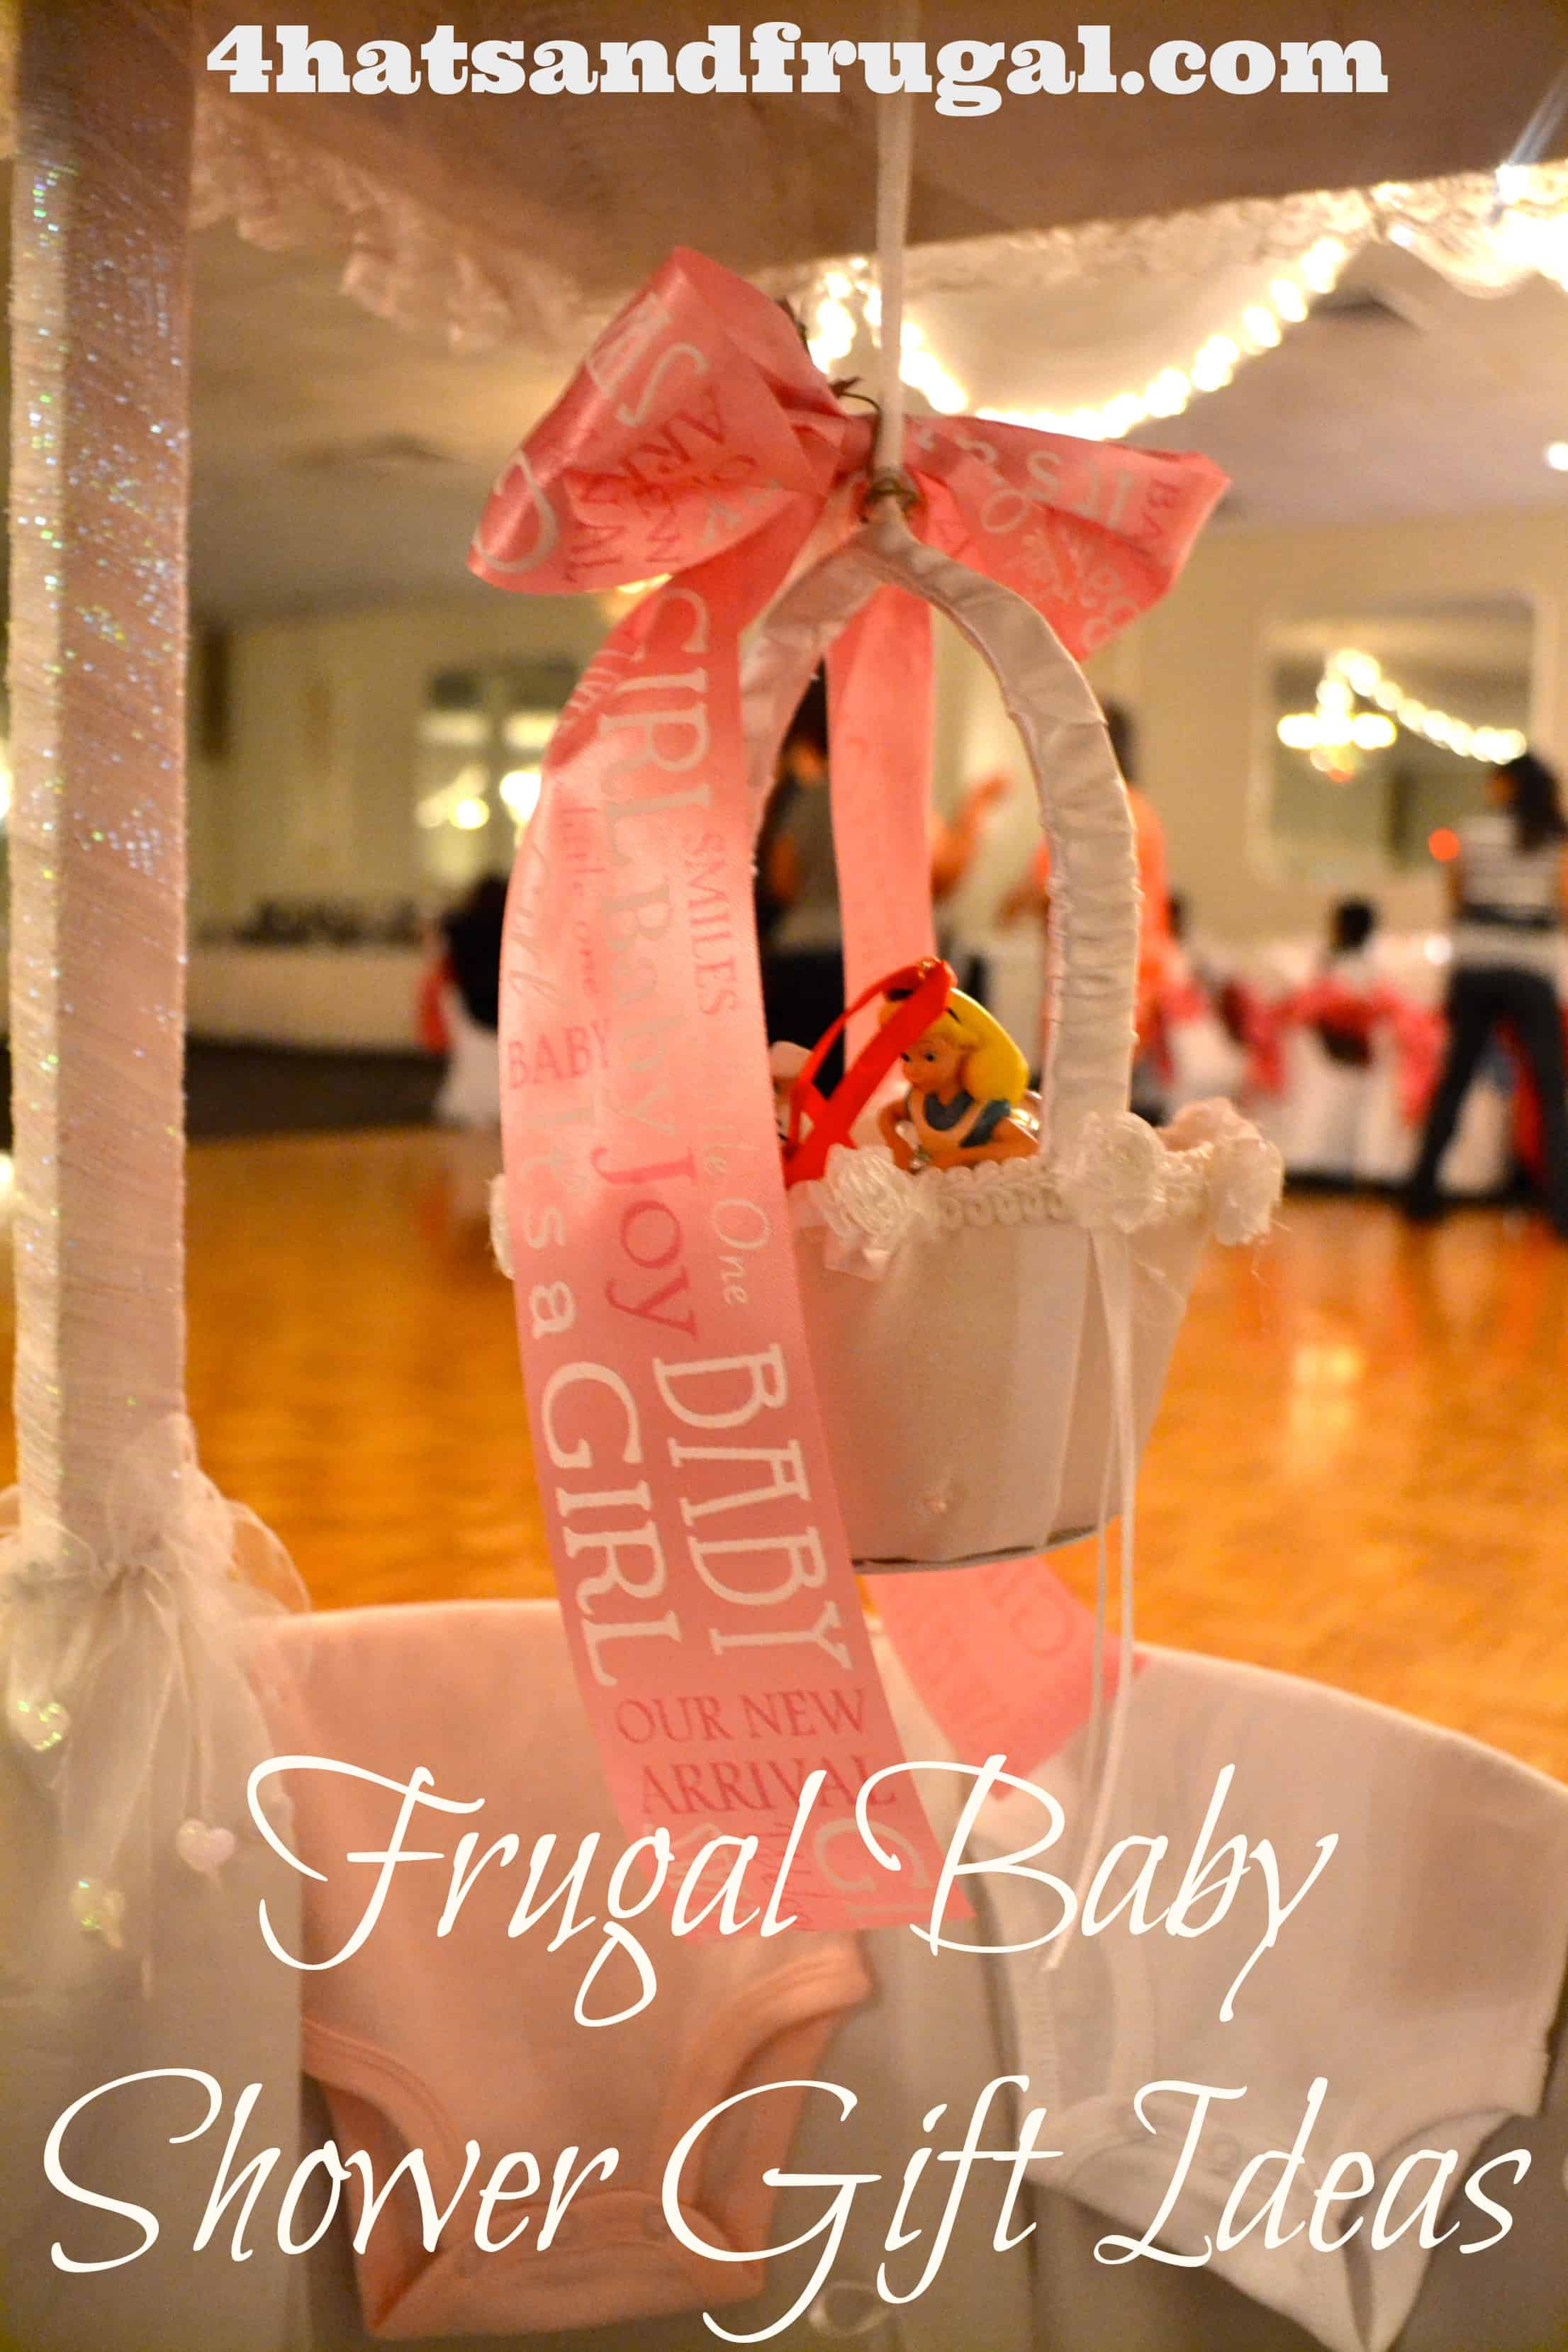 Baby Shower Gift Ideas On A Budget : Oh baby frugal shower gift ideas hats and